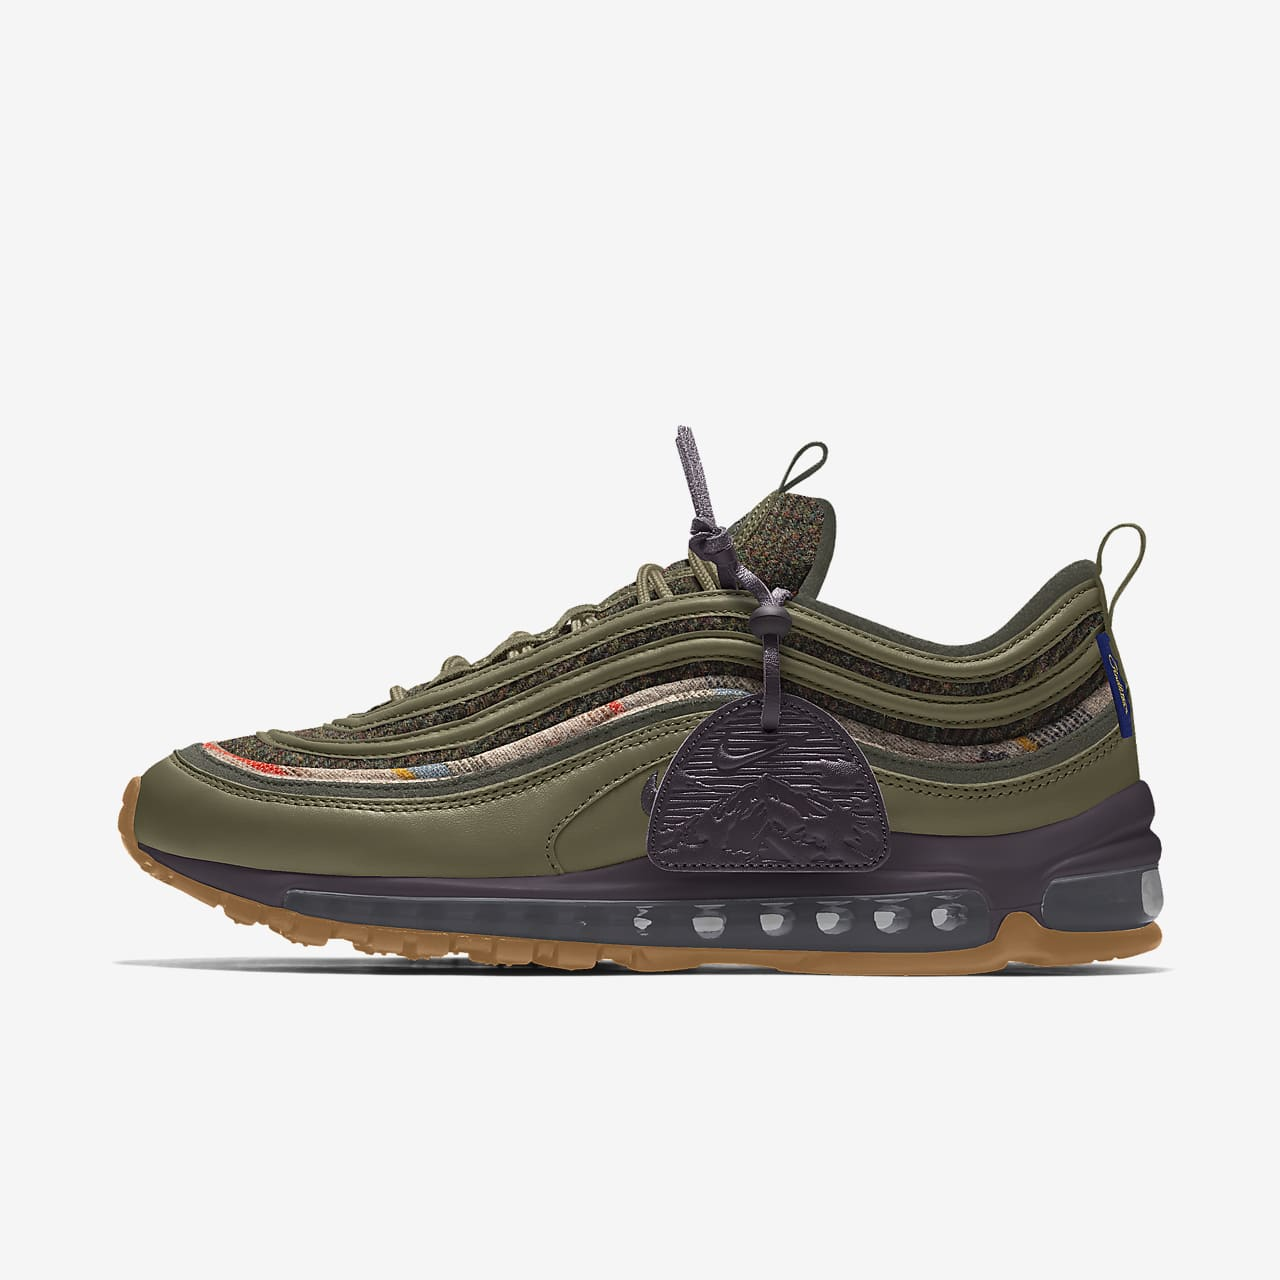 Nike Air Max 97 Pendleton By You Custom Shoe